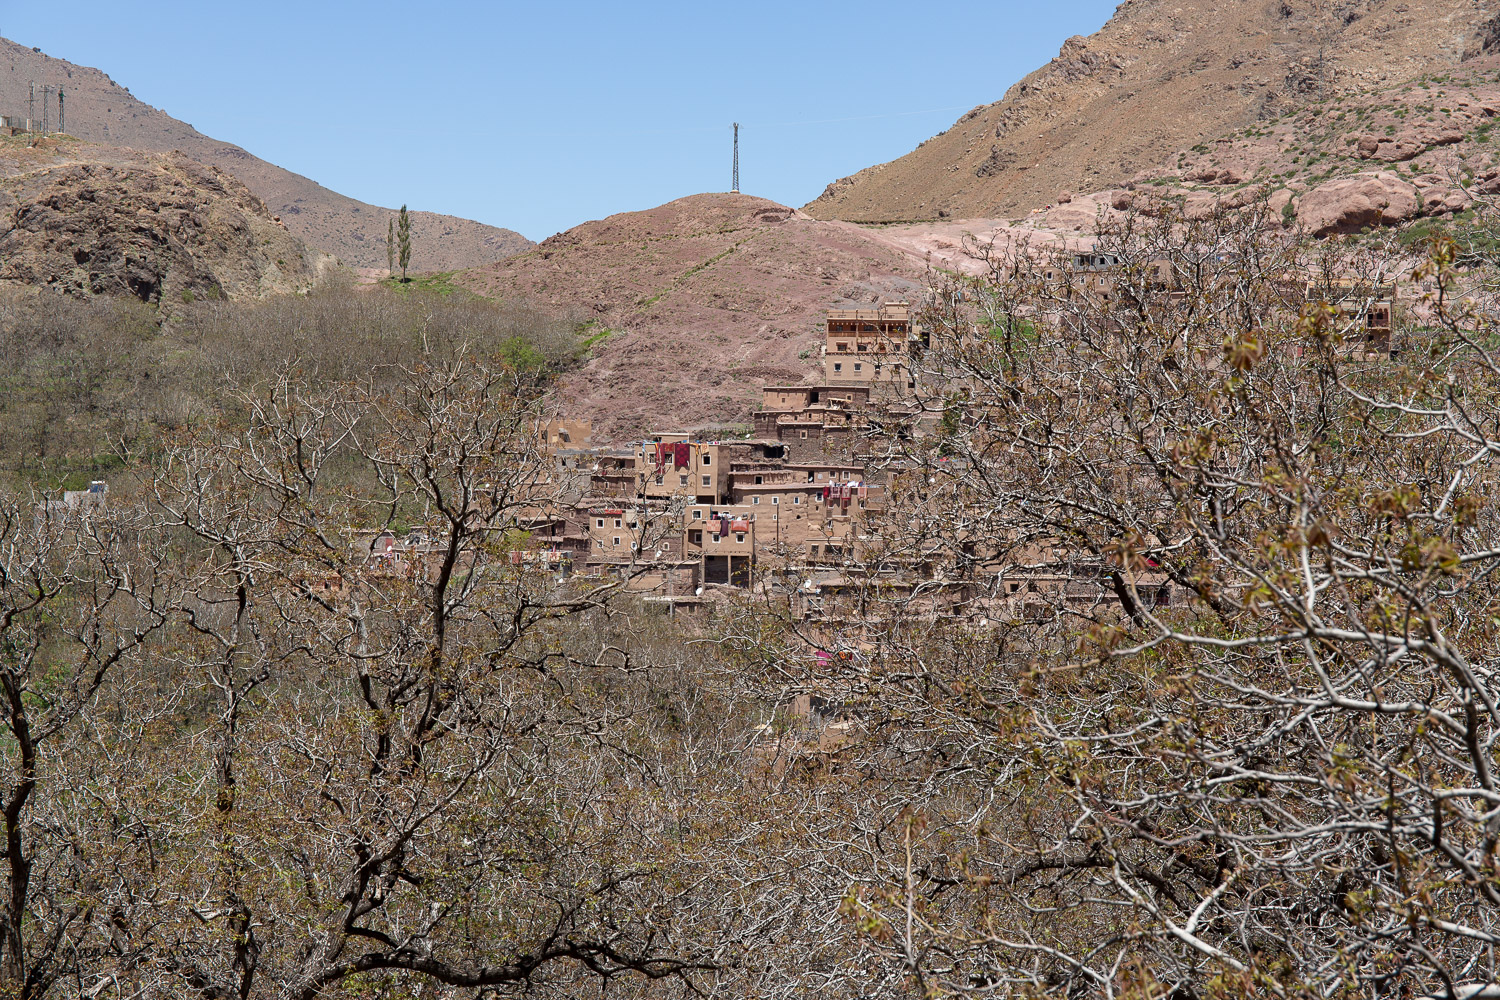 A Berber village just outside Imlil